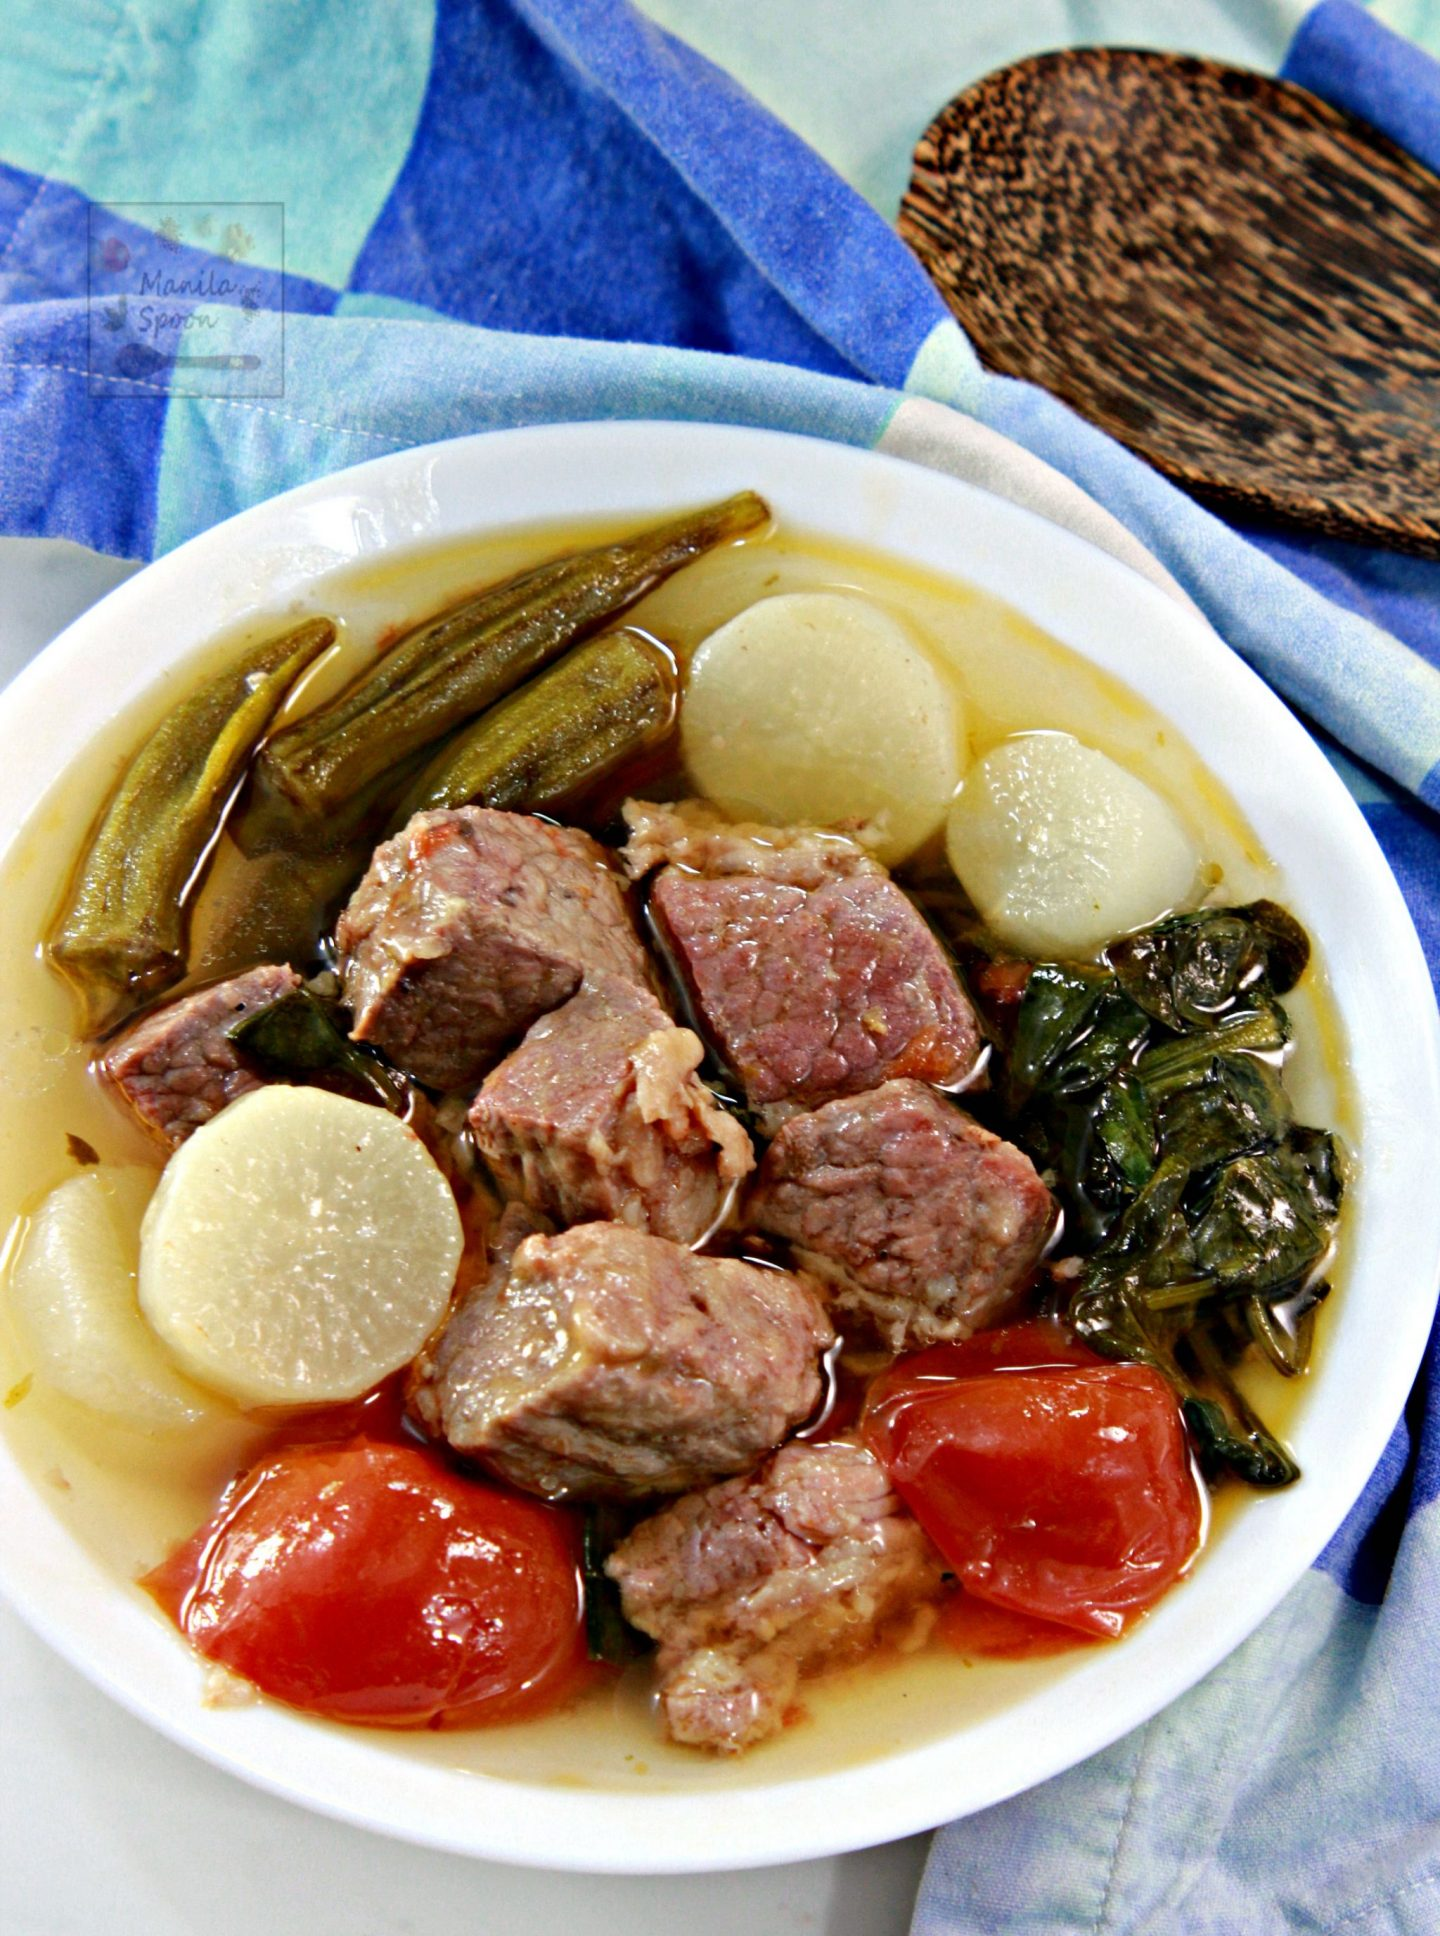 Use the slow cooker to make this Filipino favorite soup - Sinigang na Corned Beef (Corned Beef in Sour Soup). The meat comes out so tender and tasty with that unmistakable tangy and zesty flavor! Serve with rice!